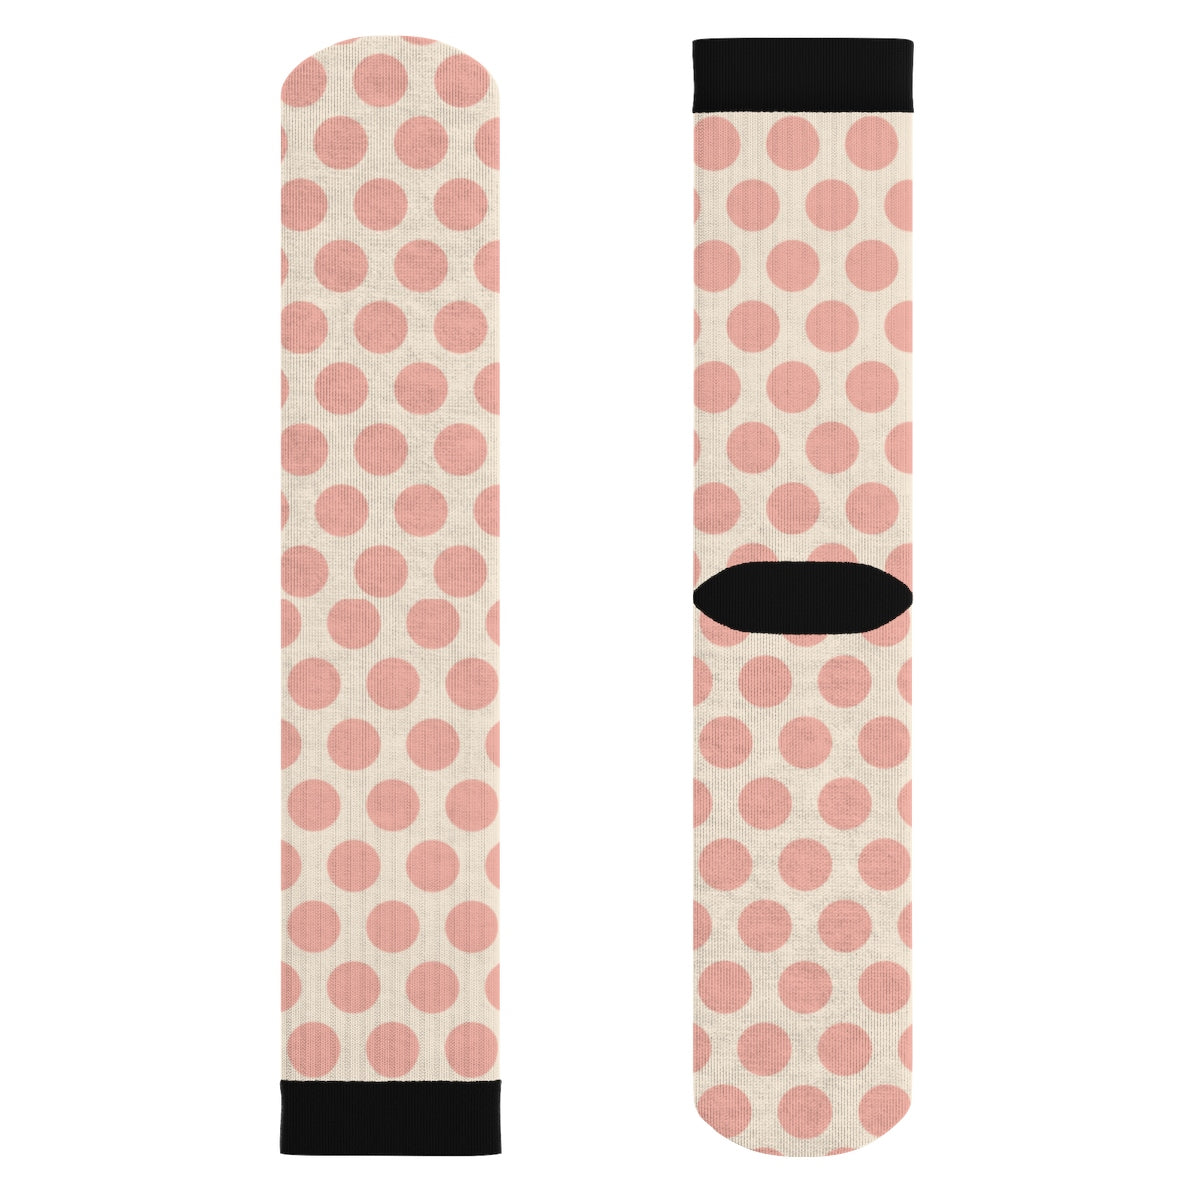 Pink on Pink Polka Dot Socks All Over Prints - Polka Dotted All The Things Boutique